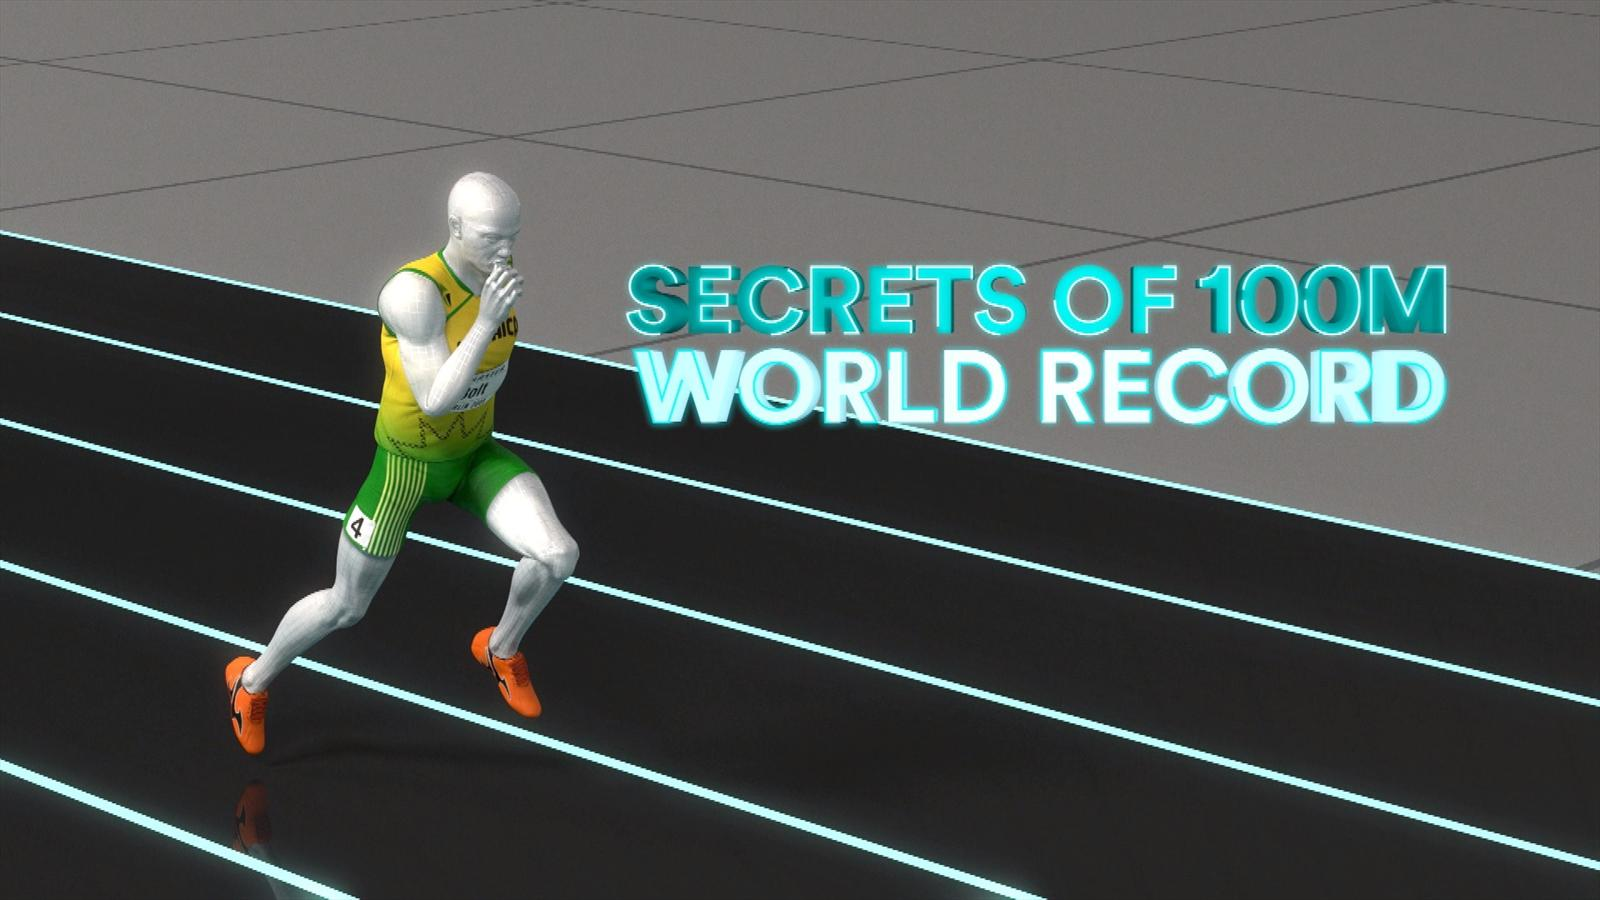 VIDEO - Sports Explainer: How Usain Bolt smashed the 100m world record - World Championships ...